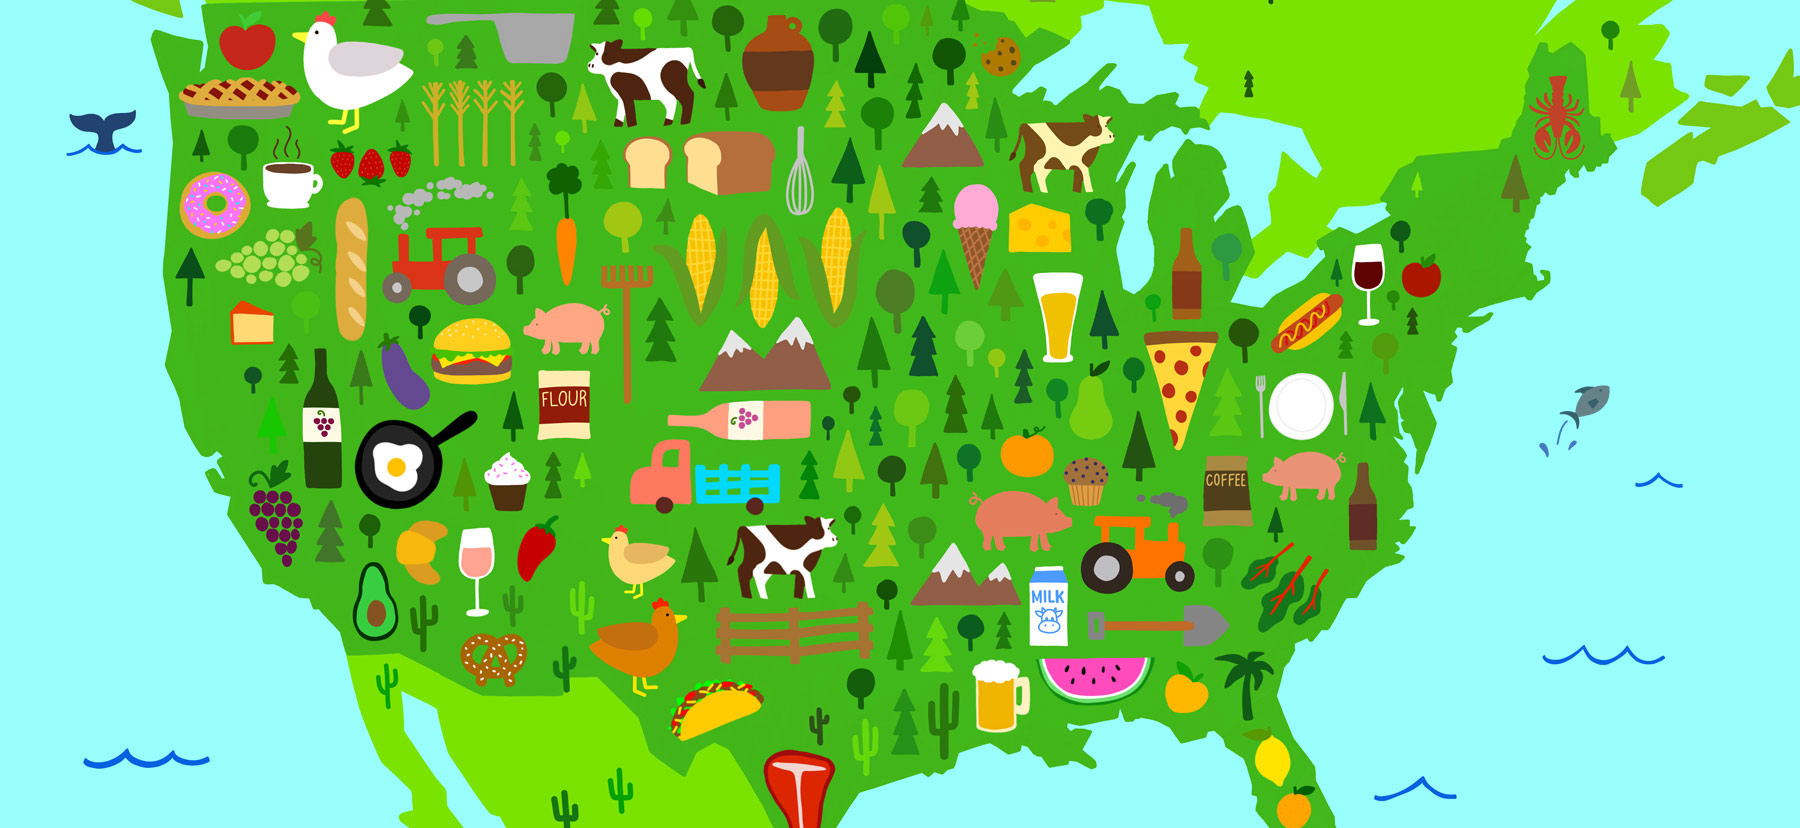 A hand-drawn map of the United States showing cartoon-like food items.